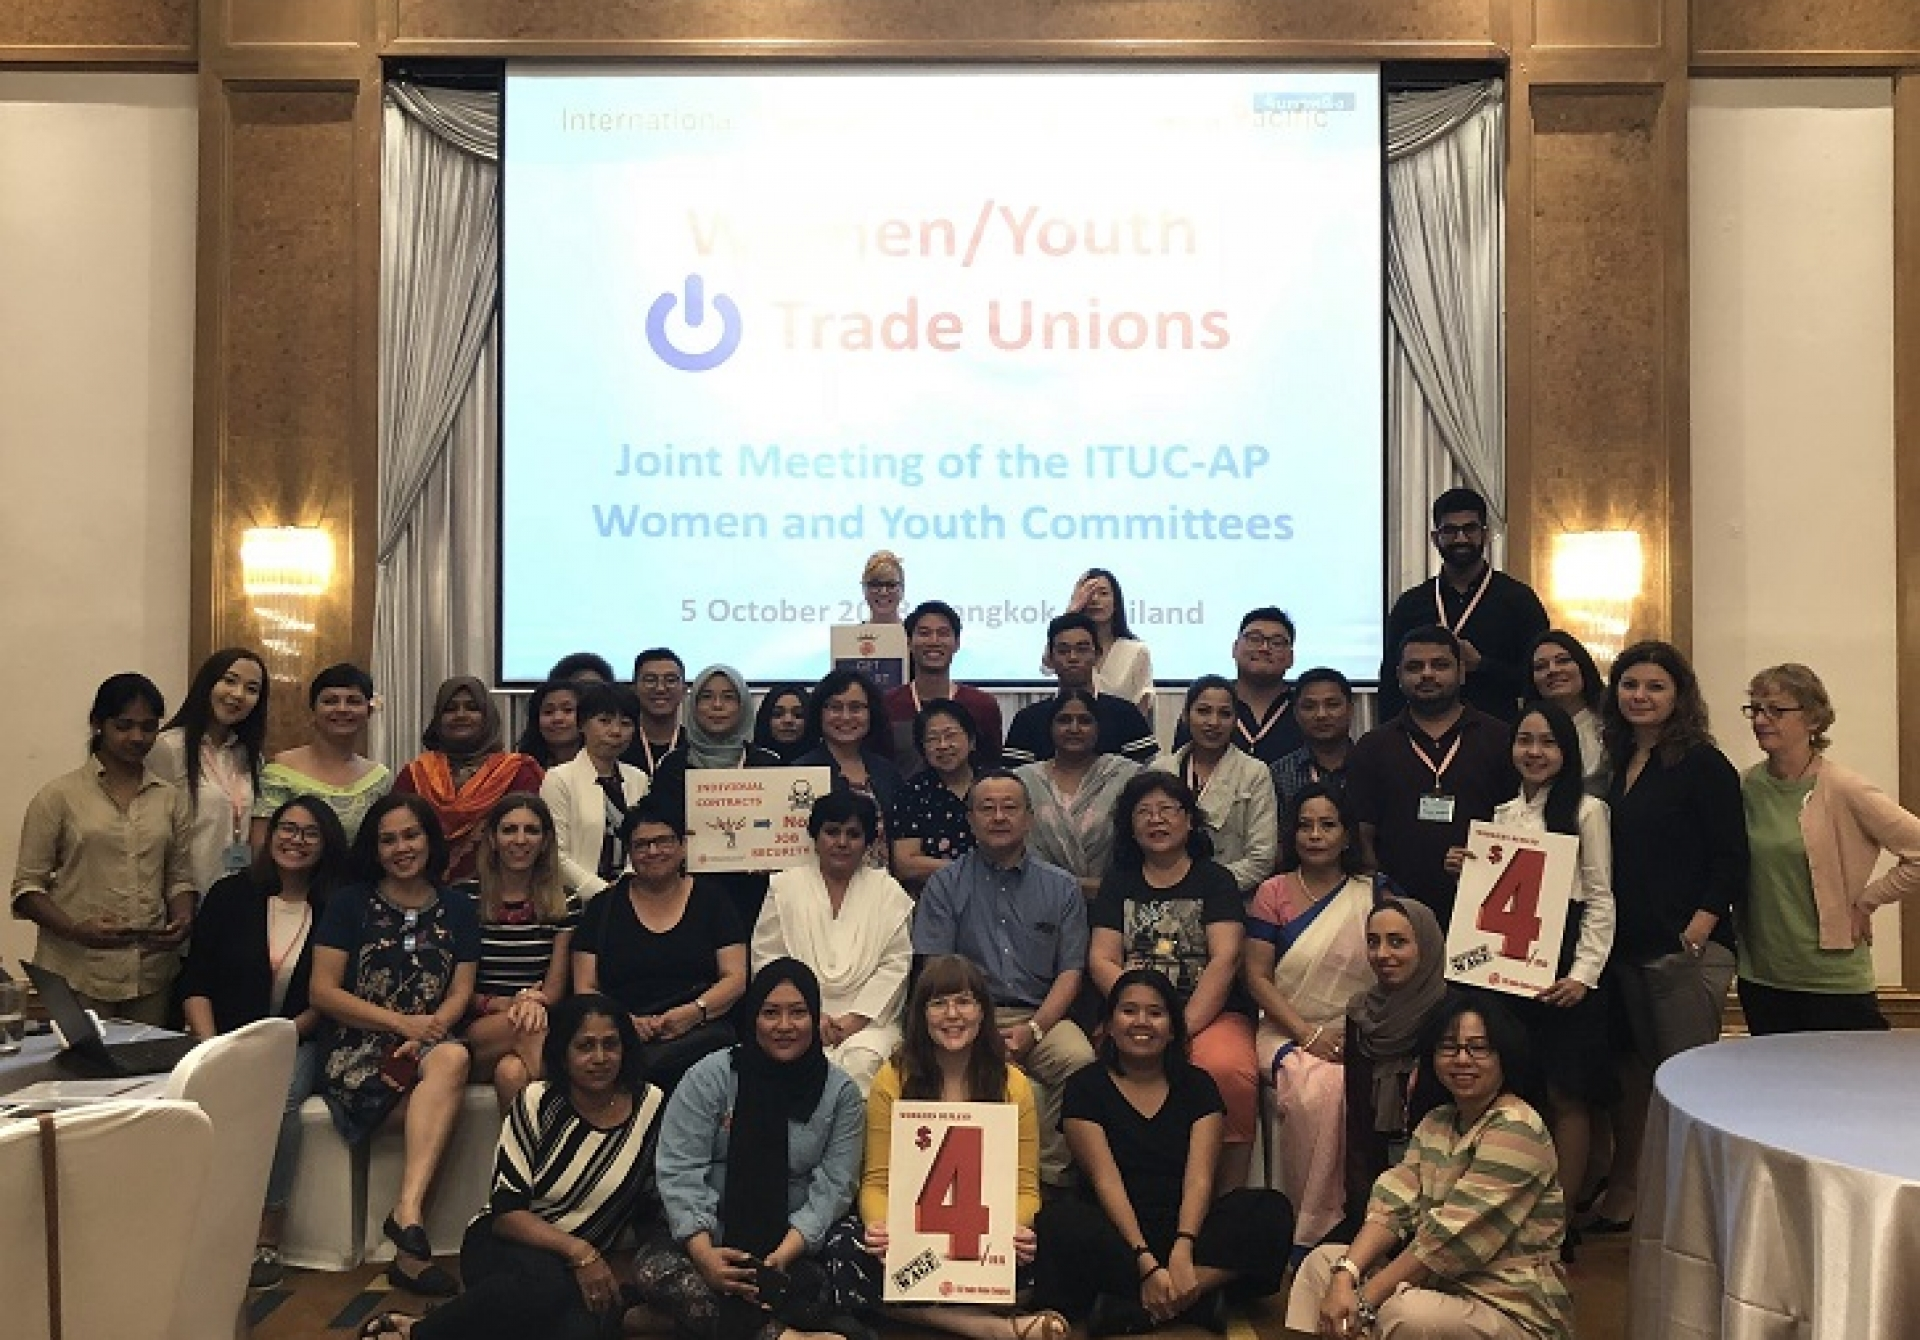 18th ITUC-AP Women Committee Meeting and Joint Meeting of the ITUC-AP Women and Youth Committees...